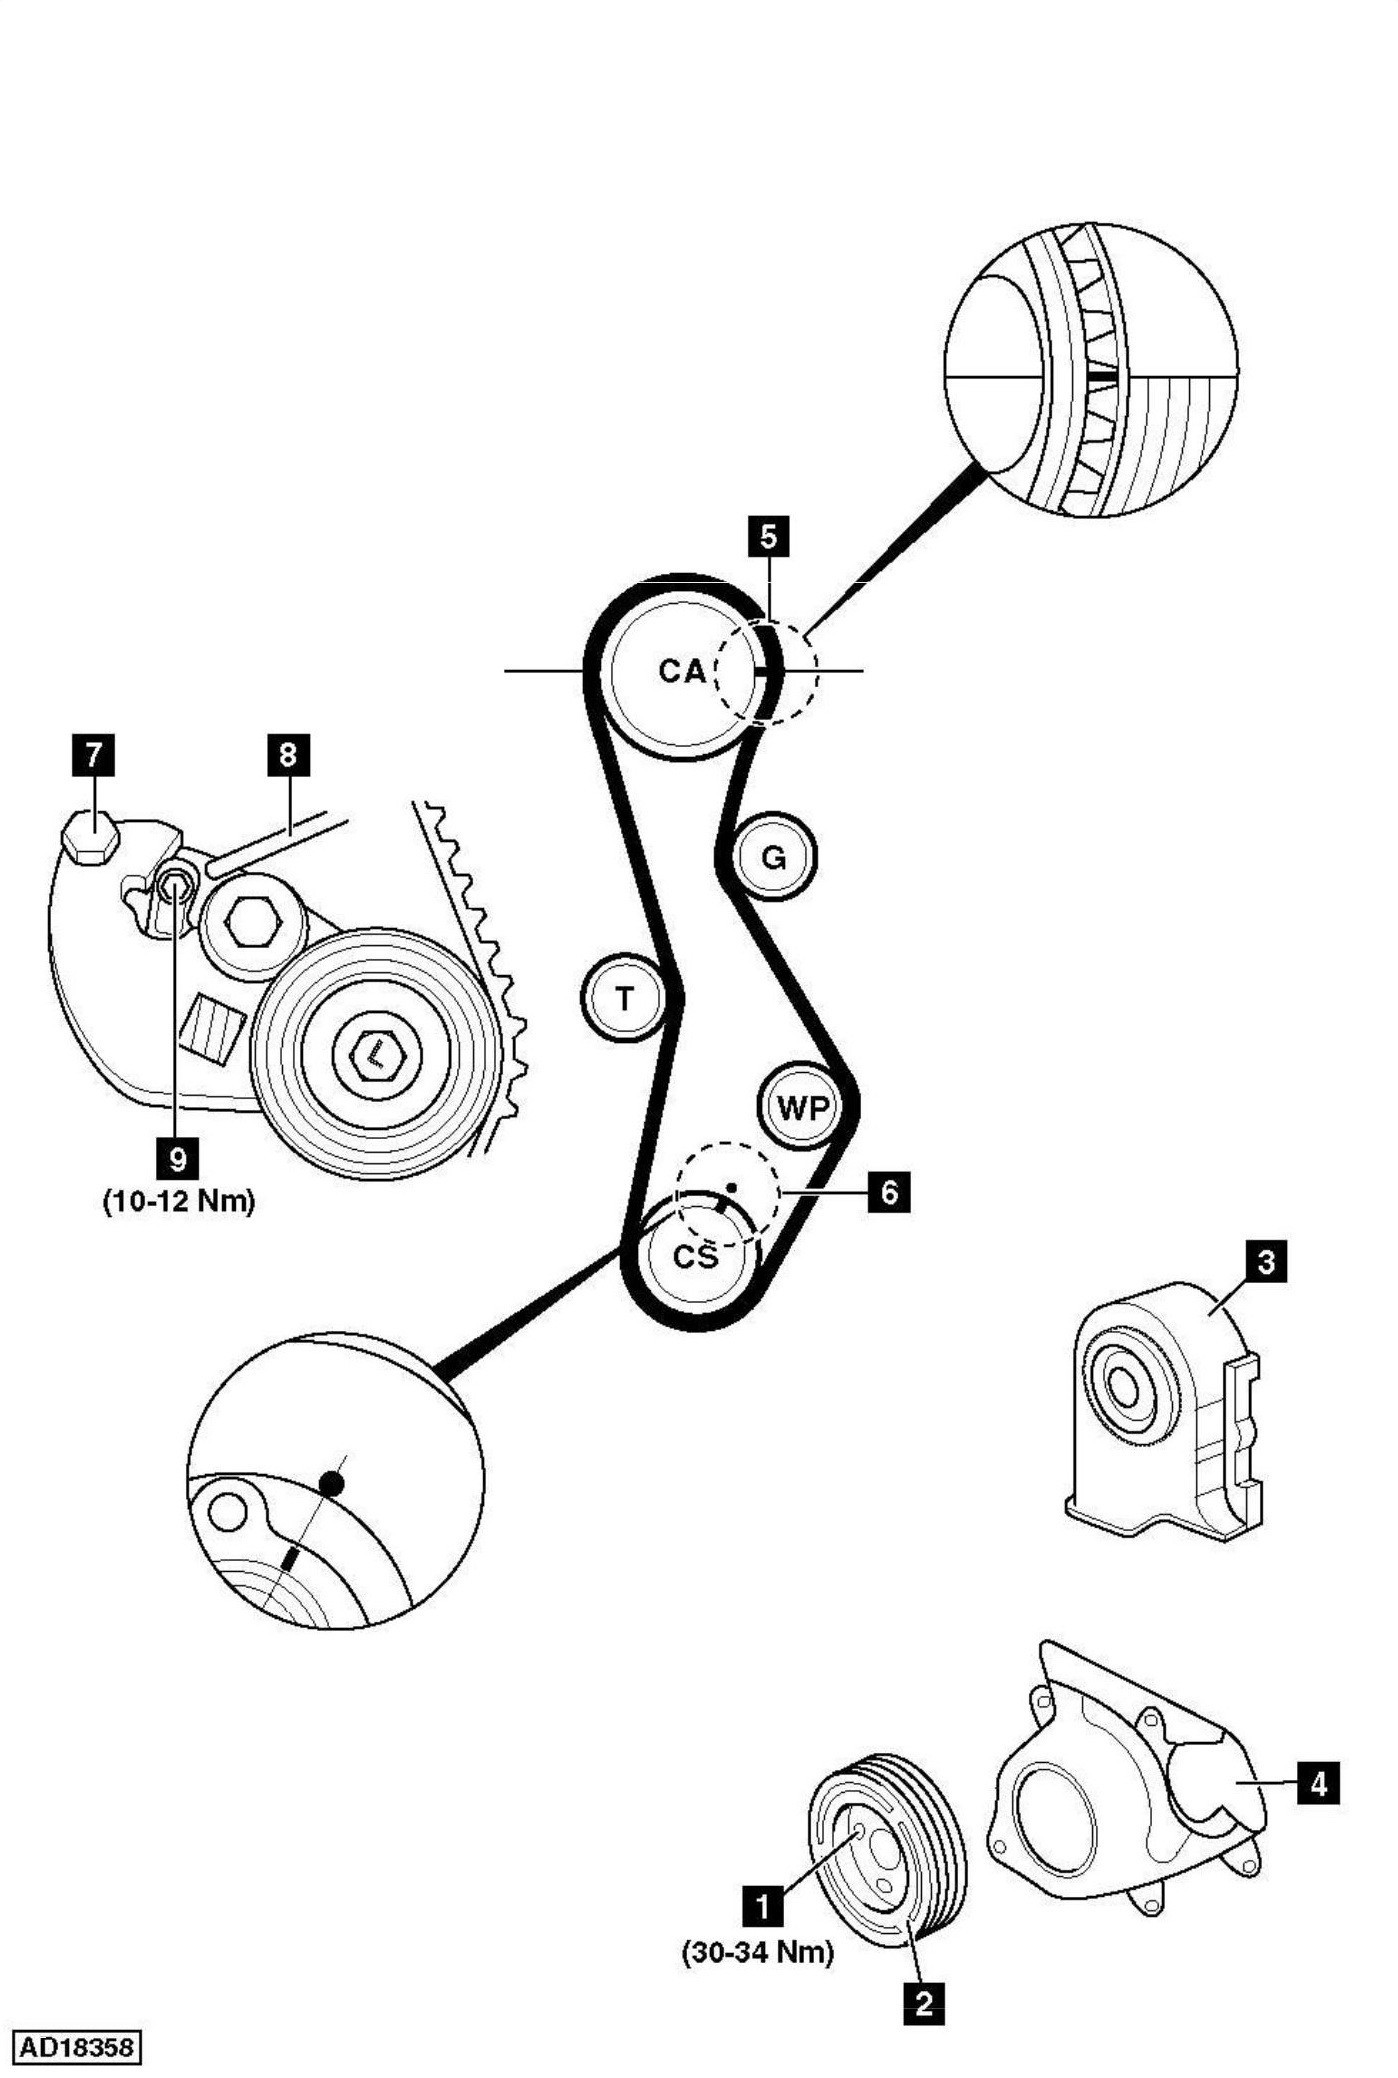 Hyundai Santa Fe Wiring Diagram 2004 Engine Mechanic New Timing How To Replace Of